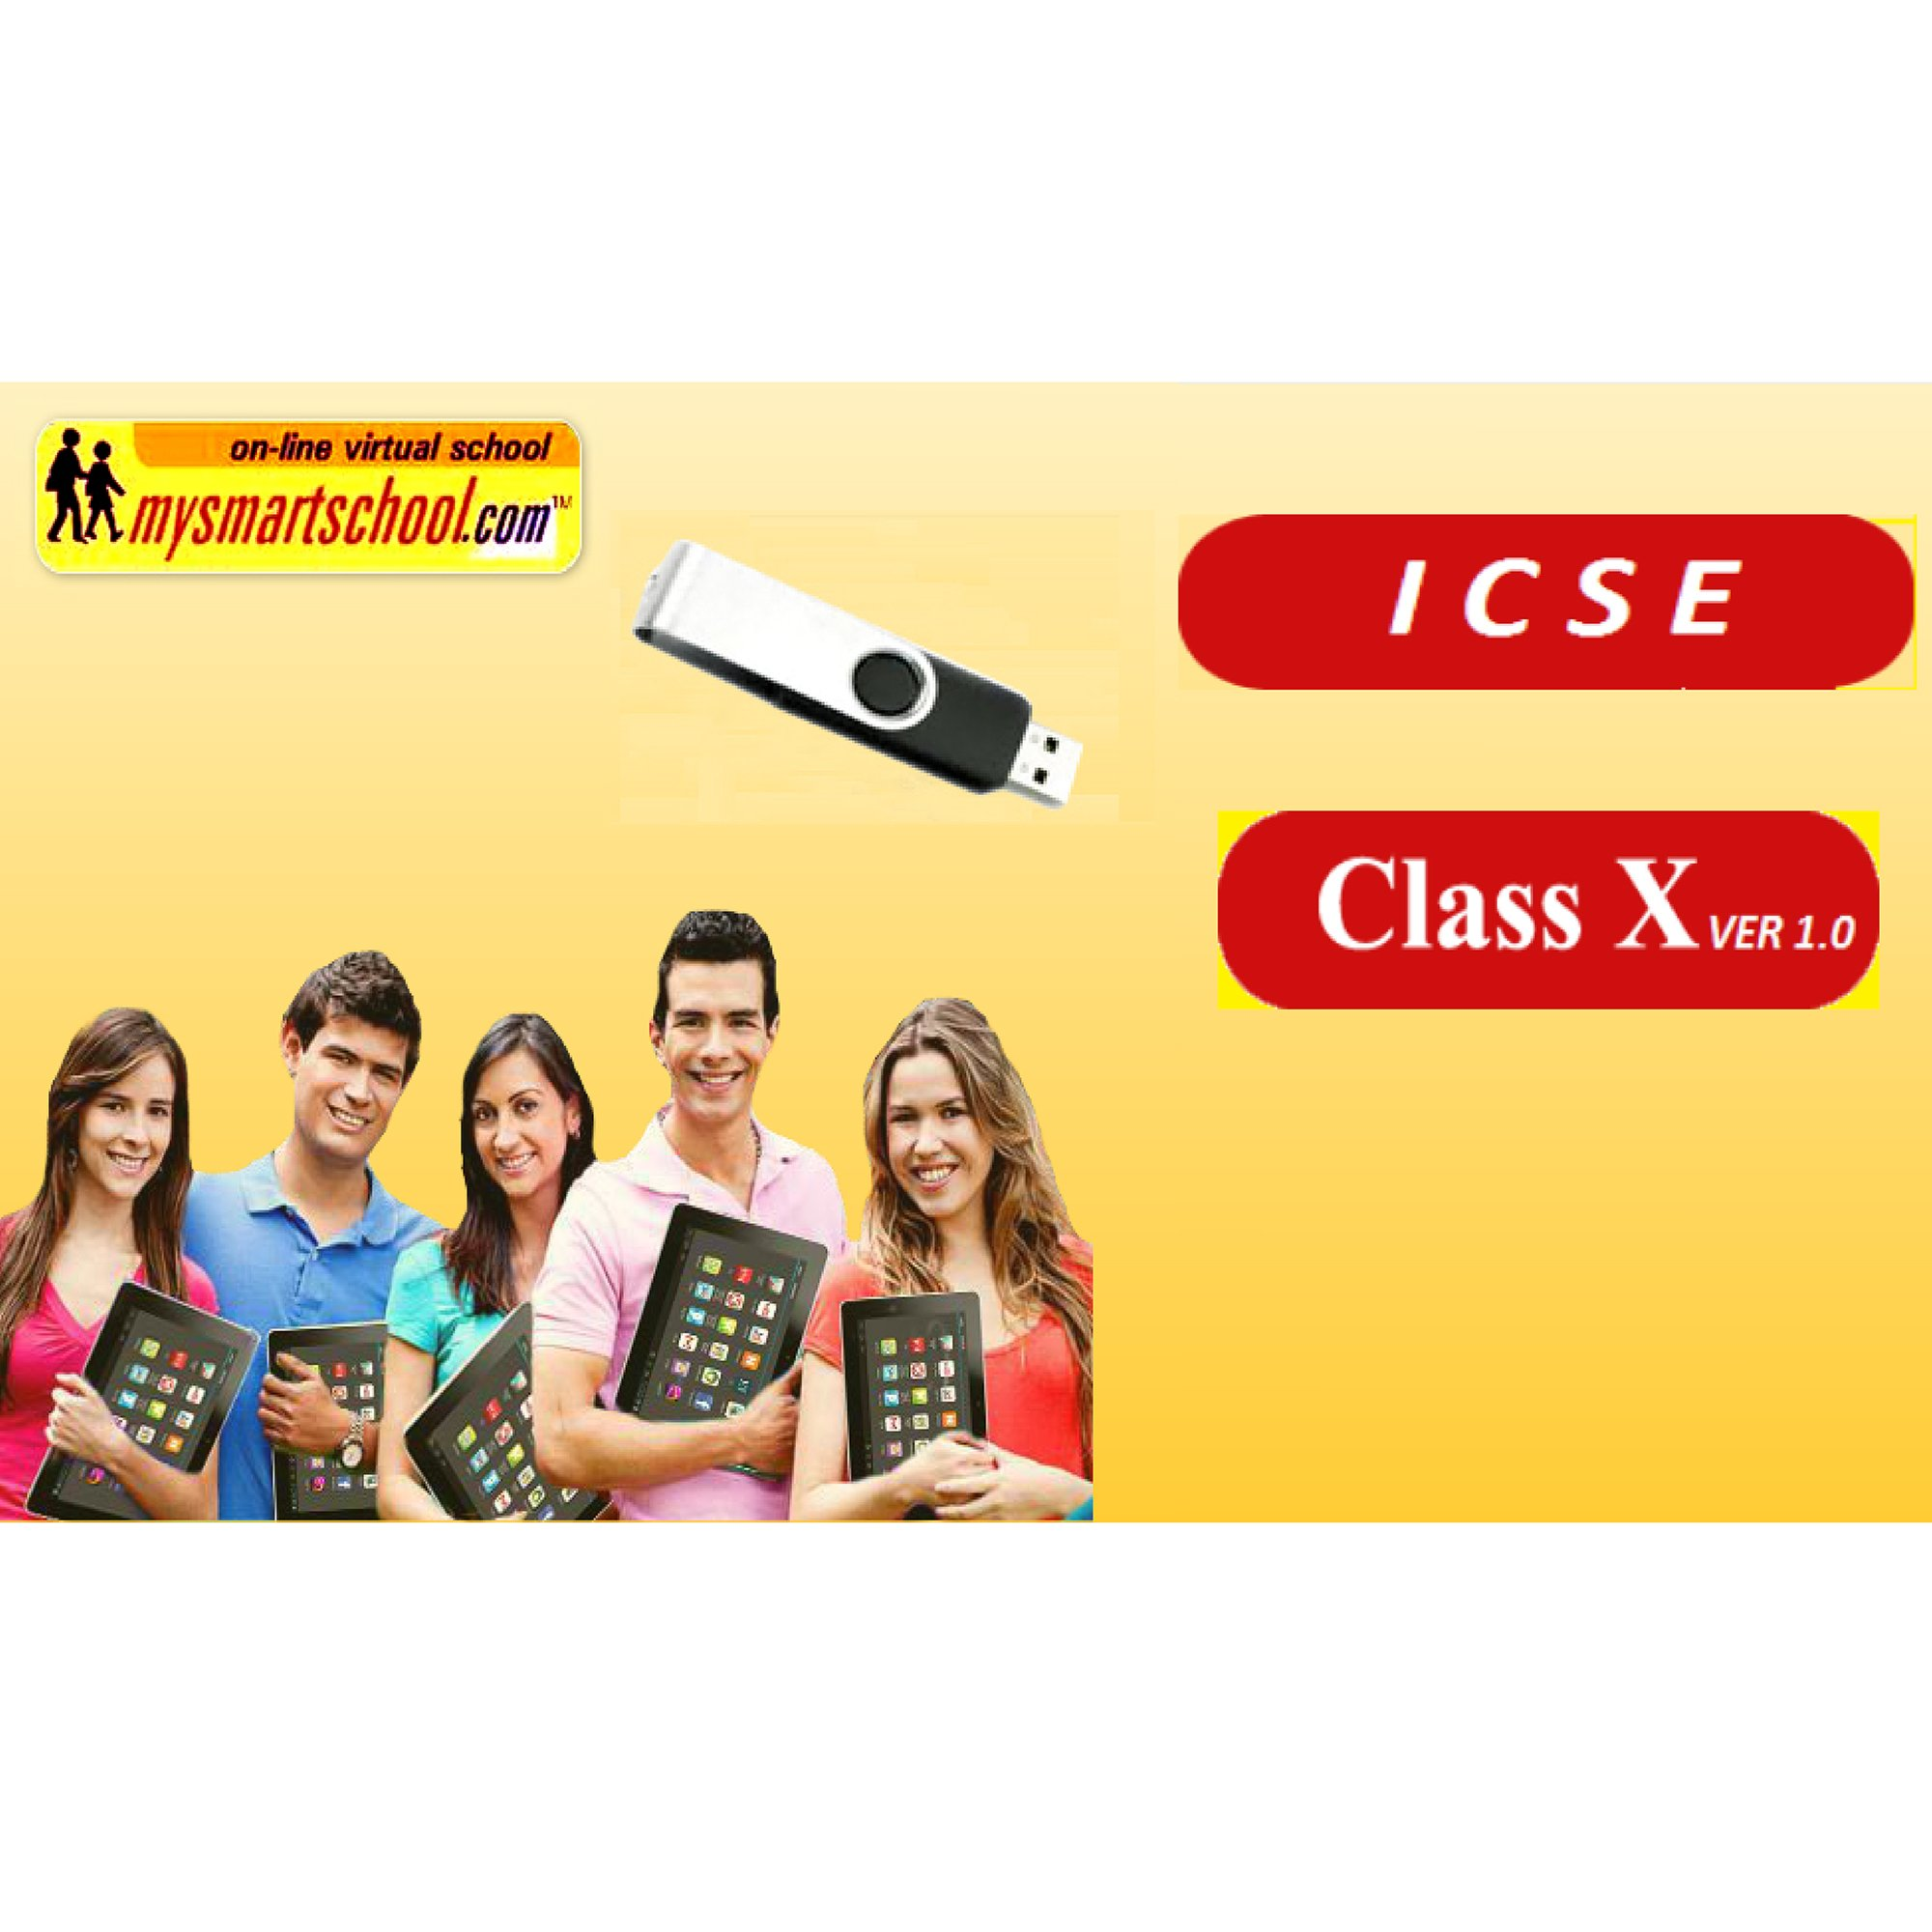 Class X ICSE USB Pendrive Course Ver1.0 (English Physics Chemistry Biology) all Lessons are Interactive Multimedia Video Lessons with multiple Questions on the Basis of ICSE Evaluation Blue Print by mysmartschool